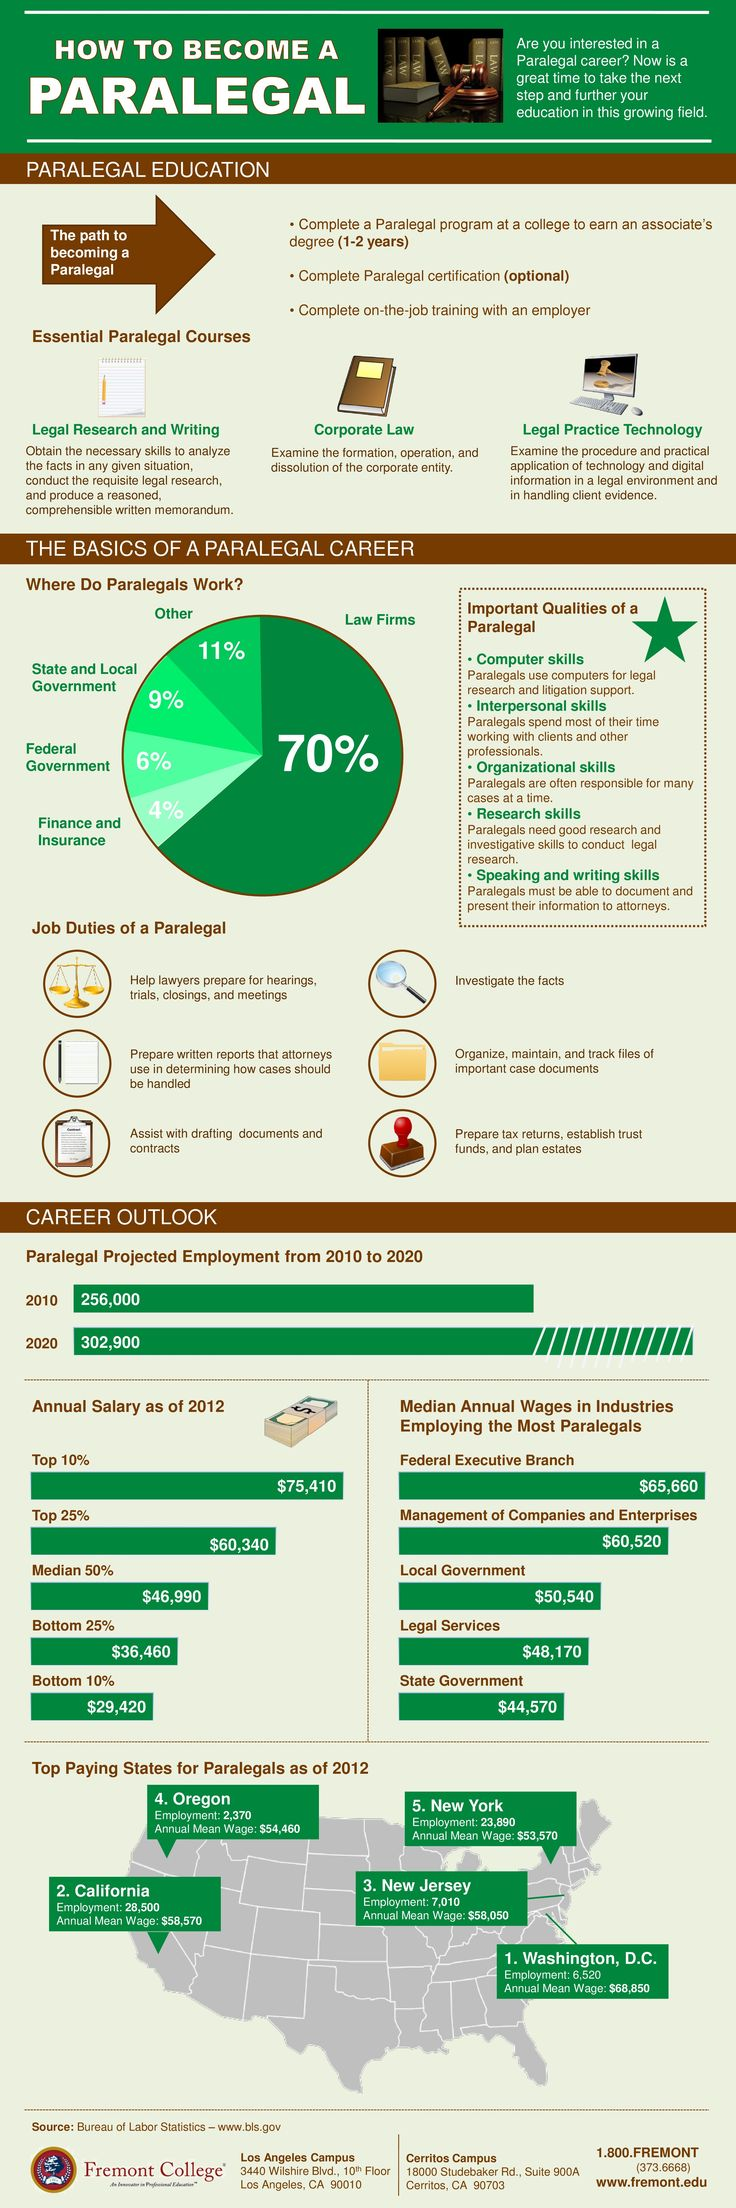 How to Become a Paralegal - Infographic